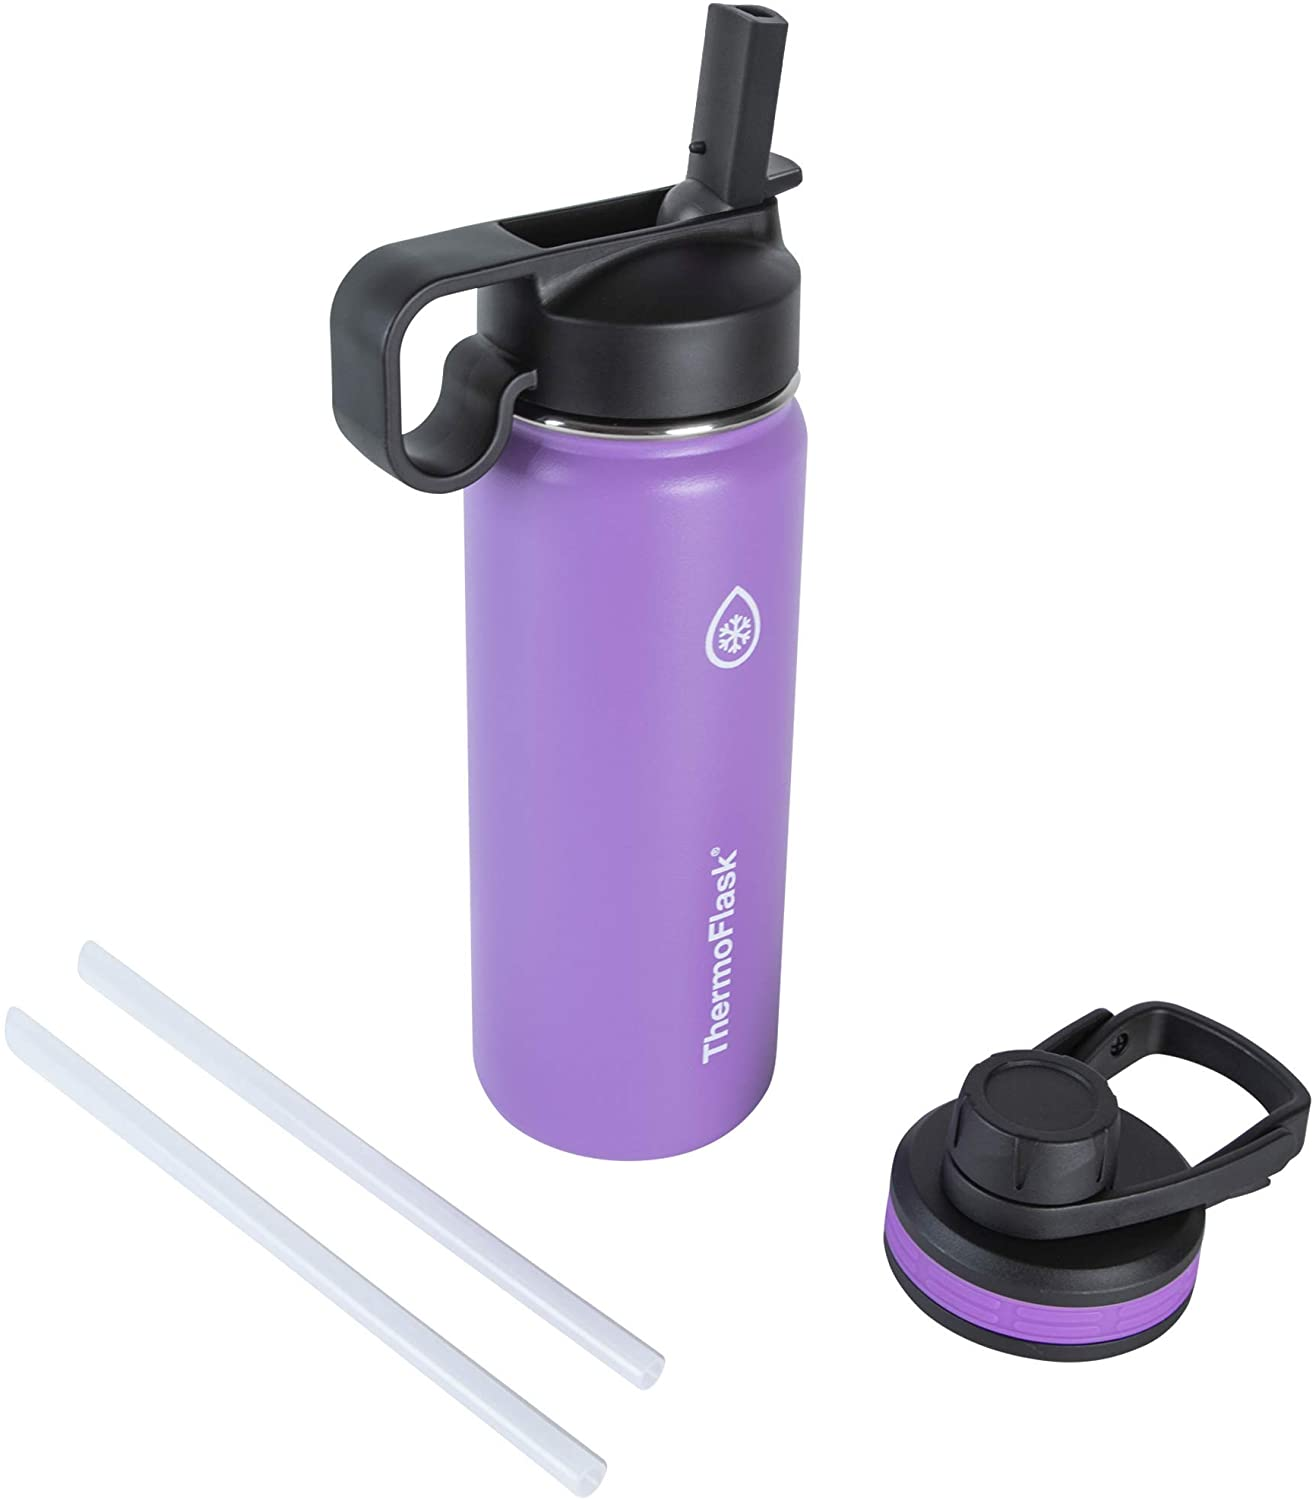 Thermoflask Double Stainless Steel Insulated Water Bottle, 18 oz, Plum